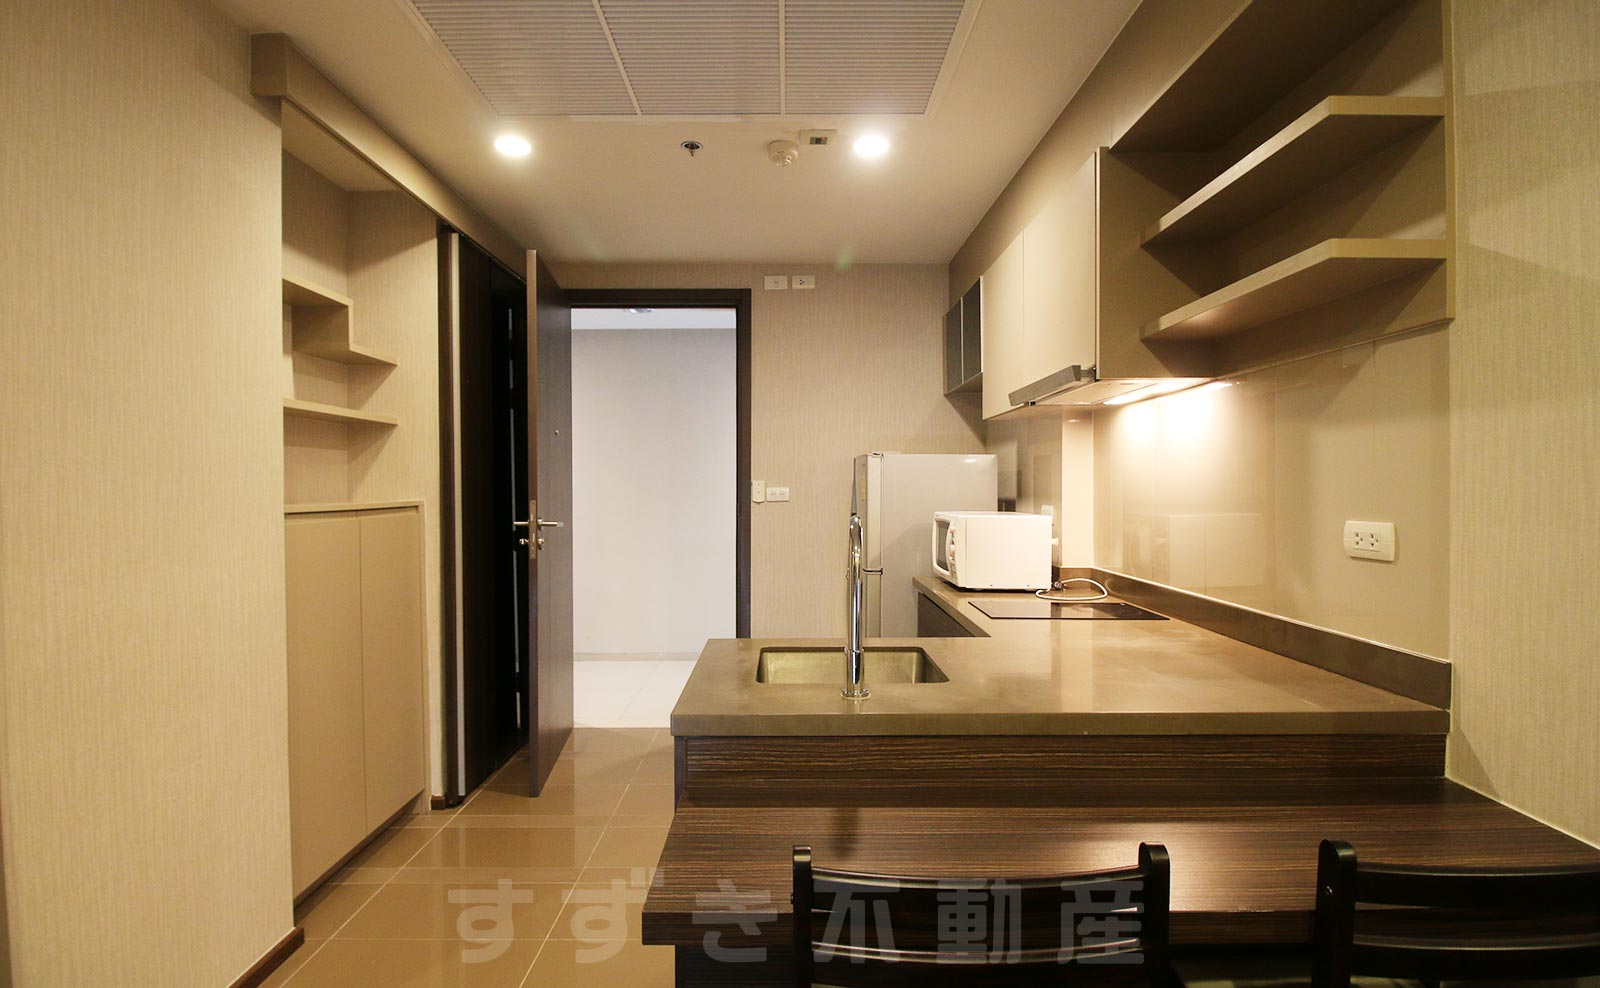 Teal Sathorn-Taksin:1Bed Room Photos No.4